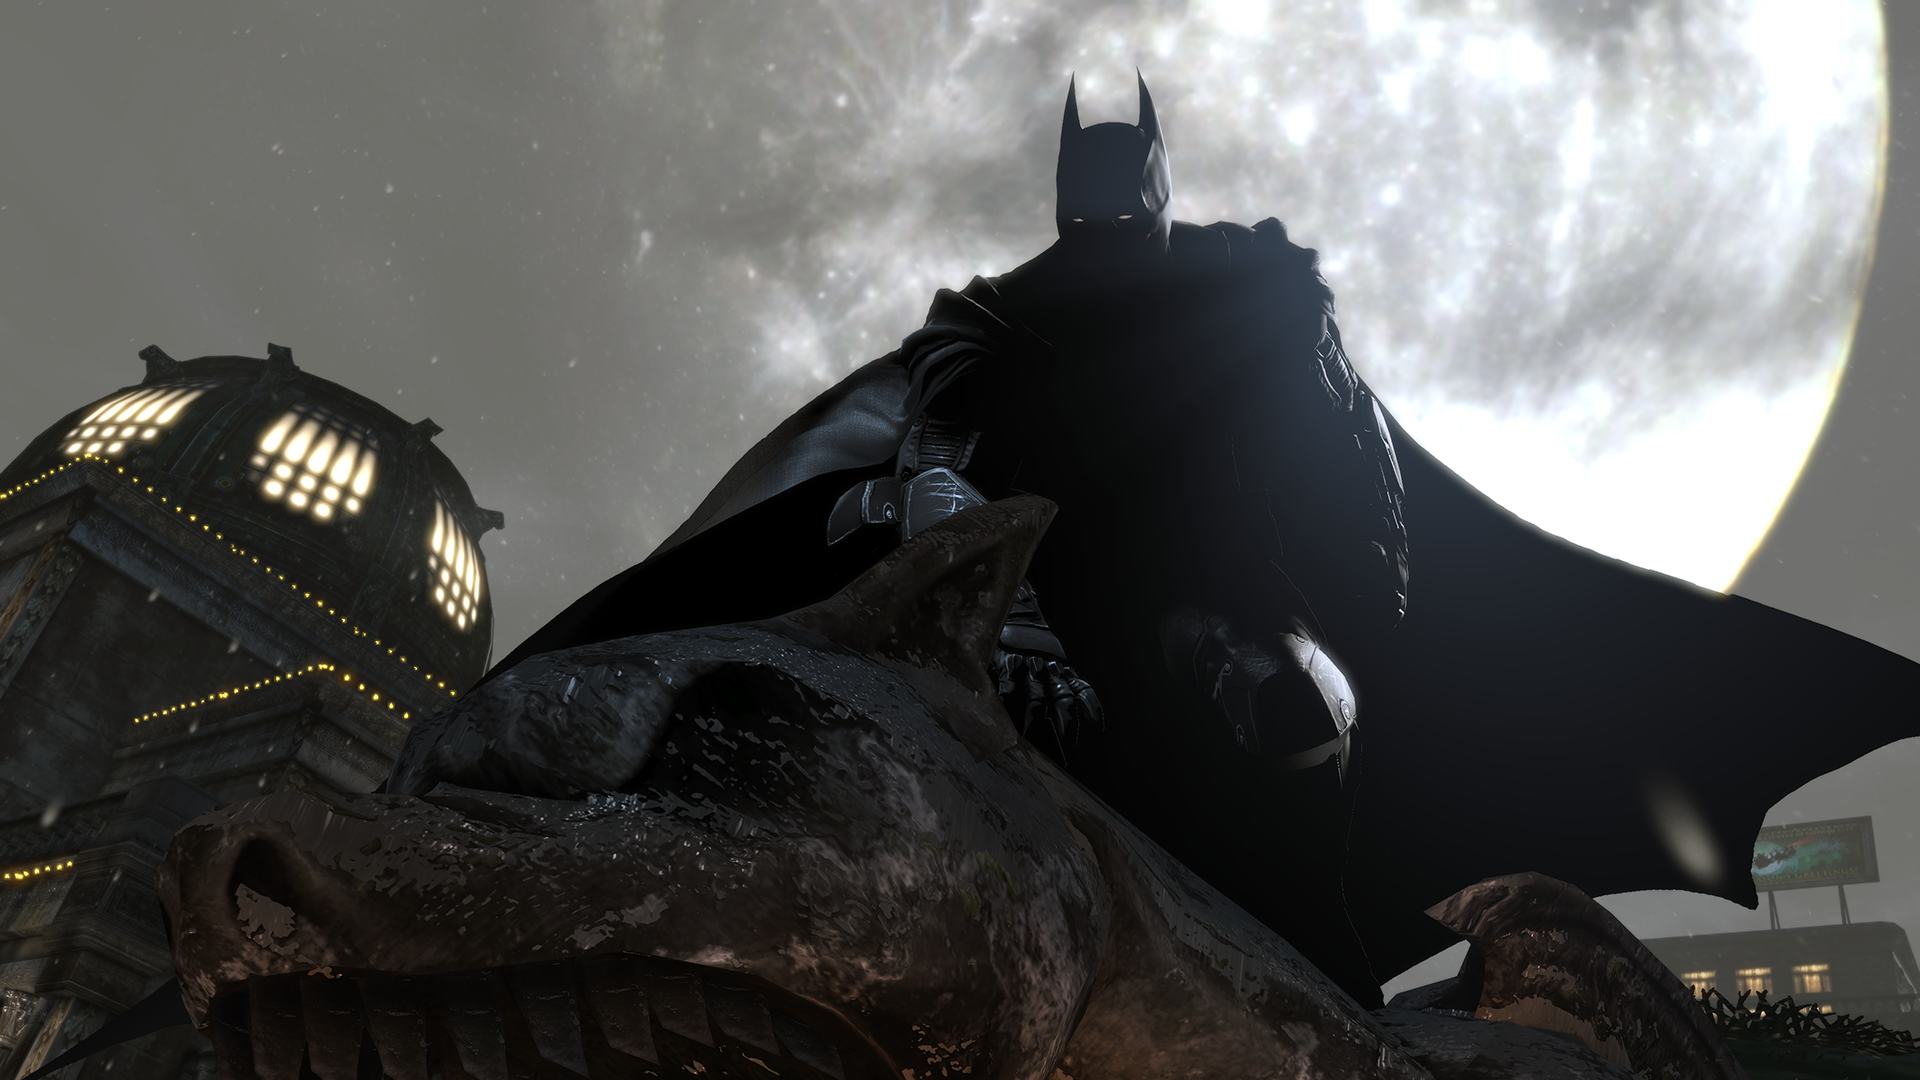 http://international.download.nvidia.com/geforce-com/international/images/batman-arkham-origins/batman-arkham-origins-general-screenshot-7.png